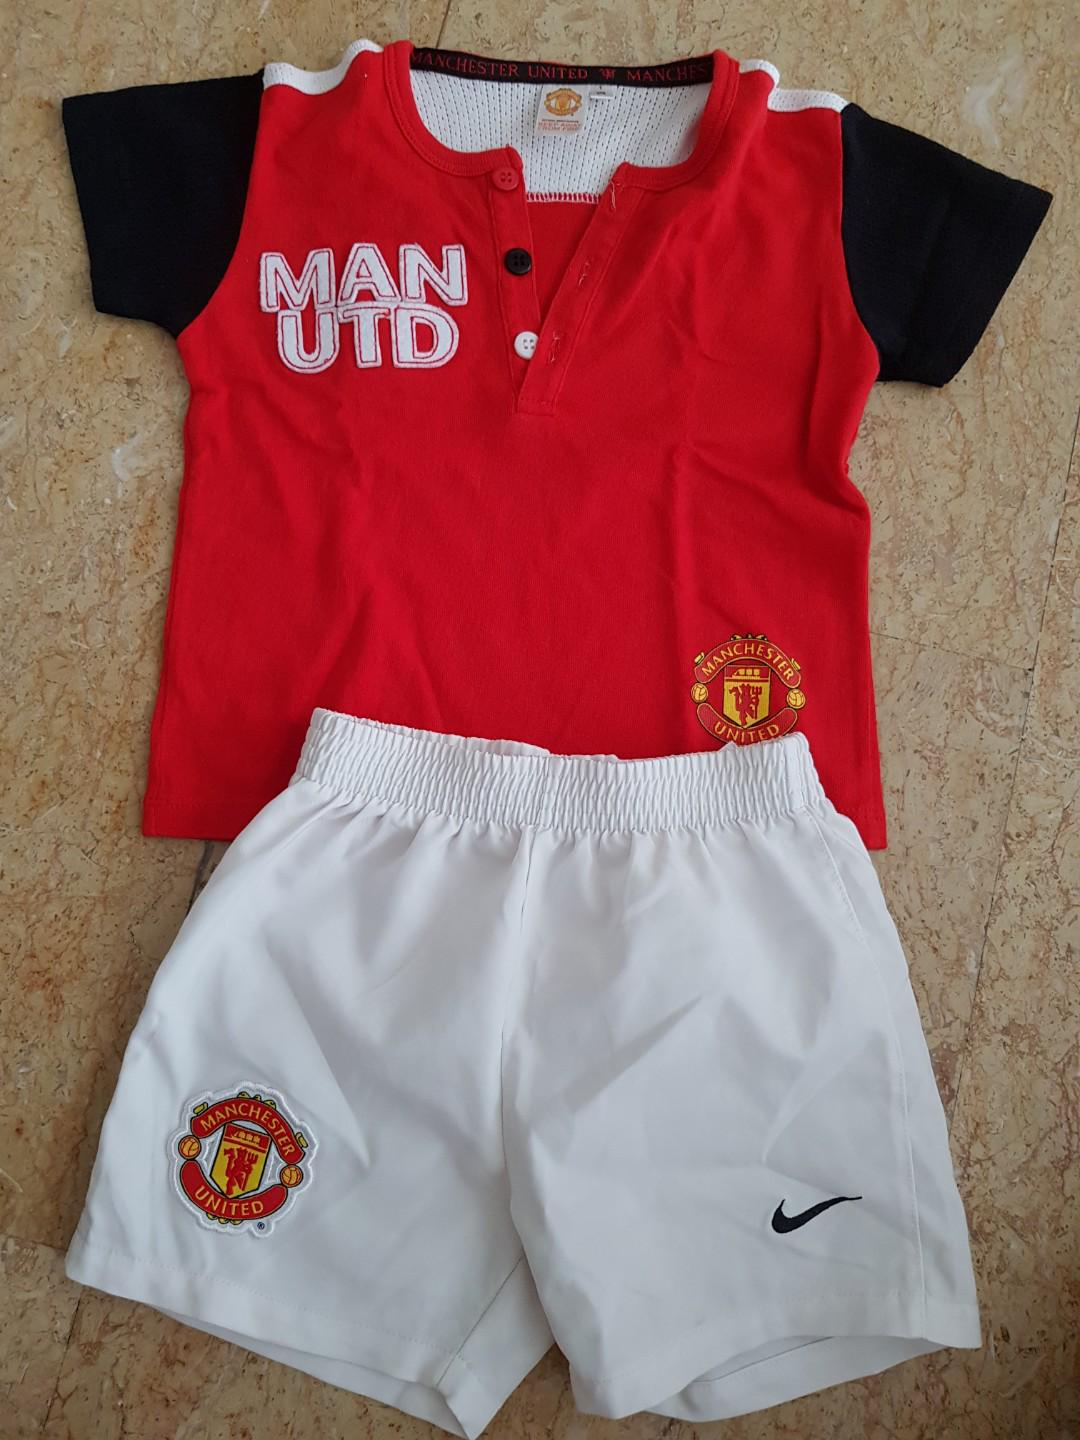 best sneakers f4de8 b9e13 Manchester United Shirt and Nike Pants 9-12 months, Babies ...